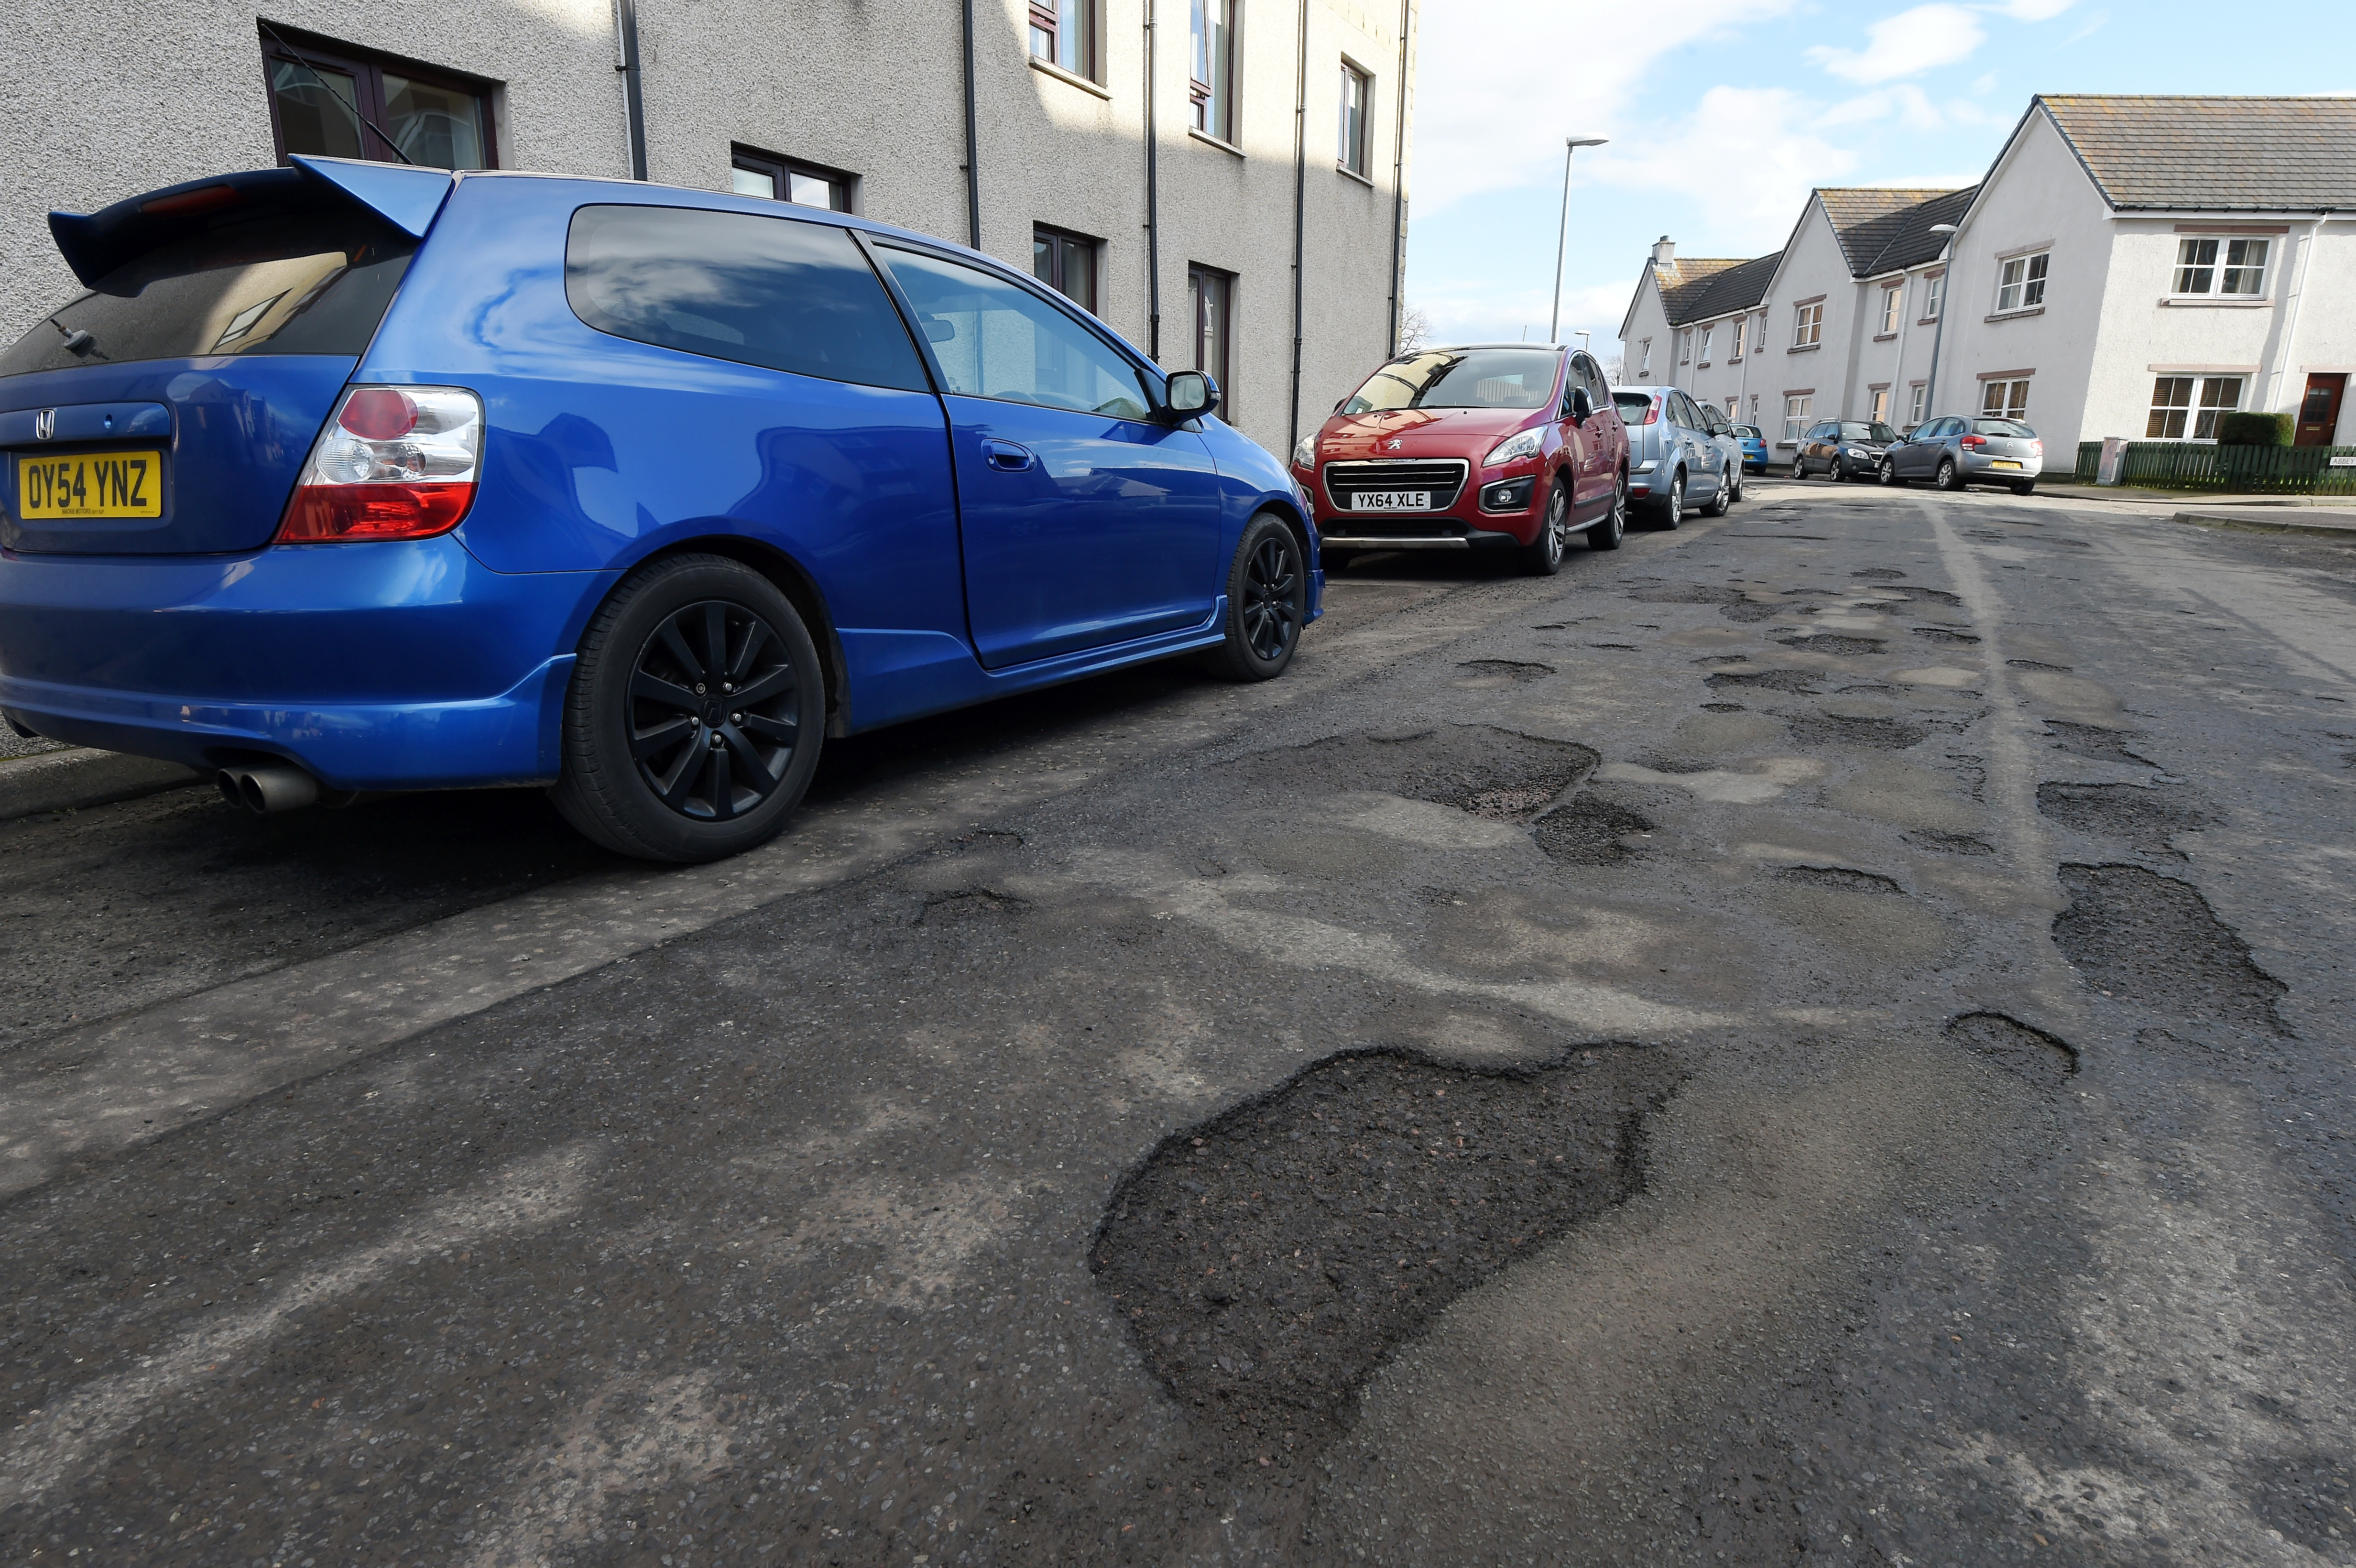 Dunabban Street in Invernes which is riddled with potholes.